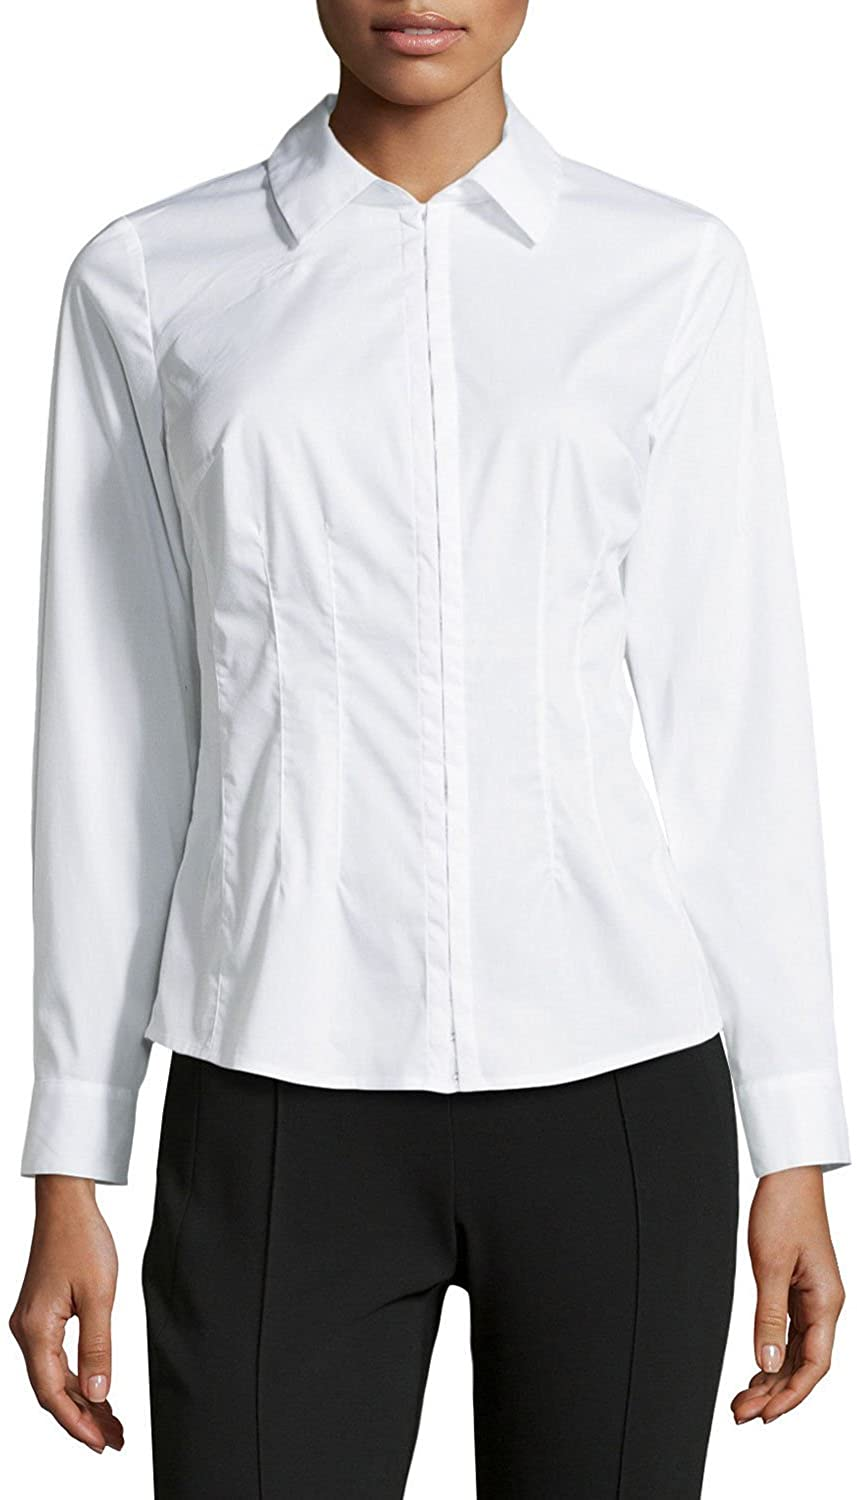 Laundry By Shelli Segal Womens's Fitted Blouse Optic White